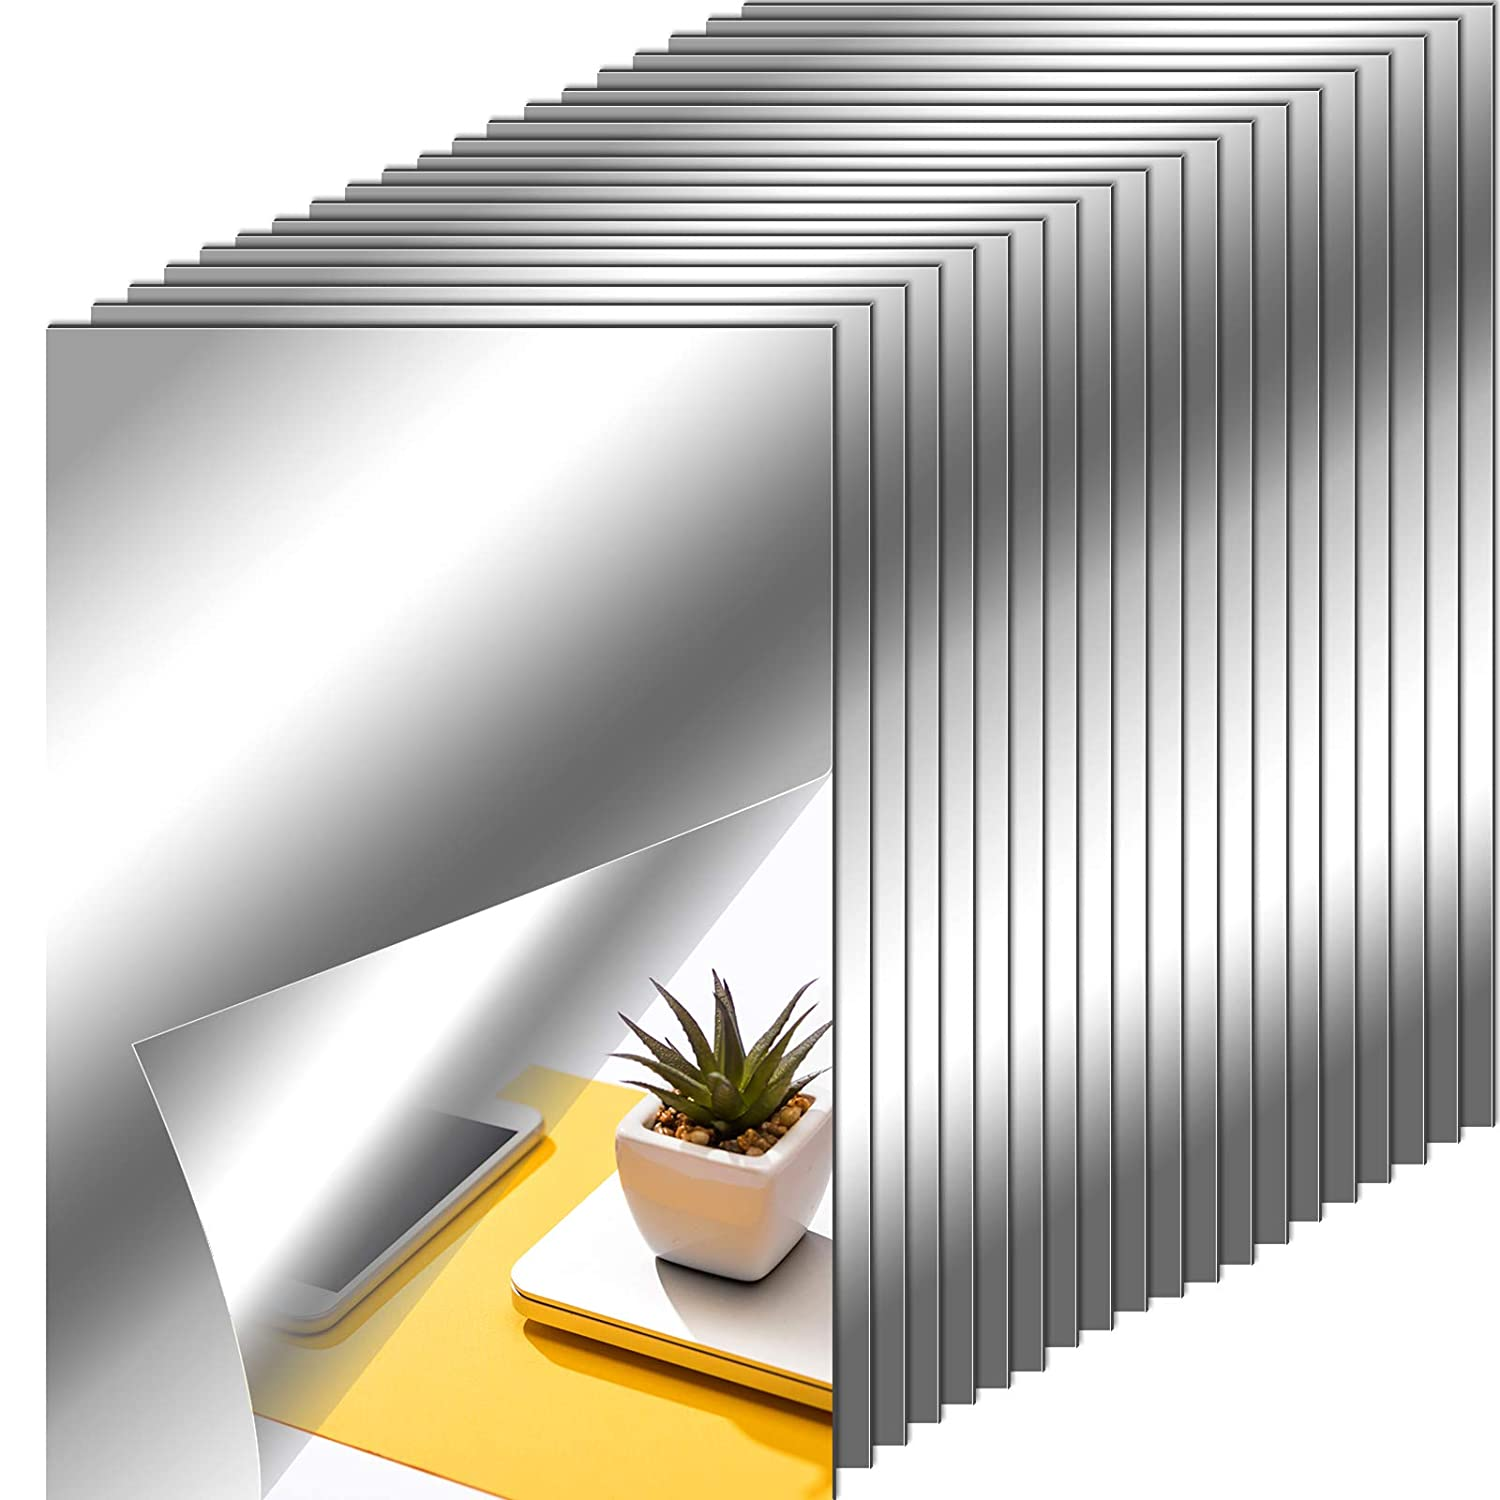 Flexible Mirror Sheets Self Adhesive Non Glass Mirror Tiles Mirror Stickers for Home Wall Decor (20, 6 x 9 Inches)